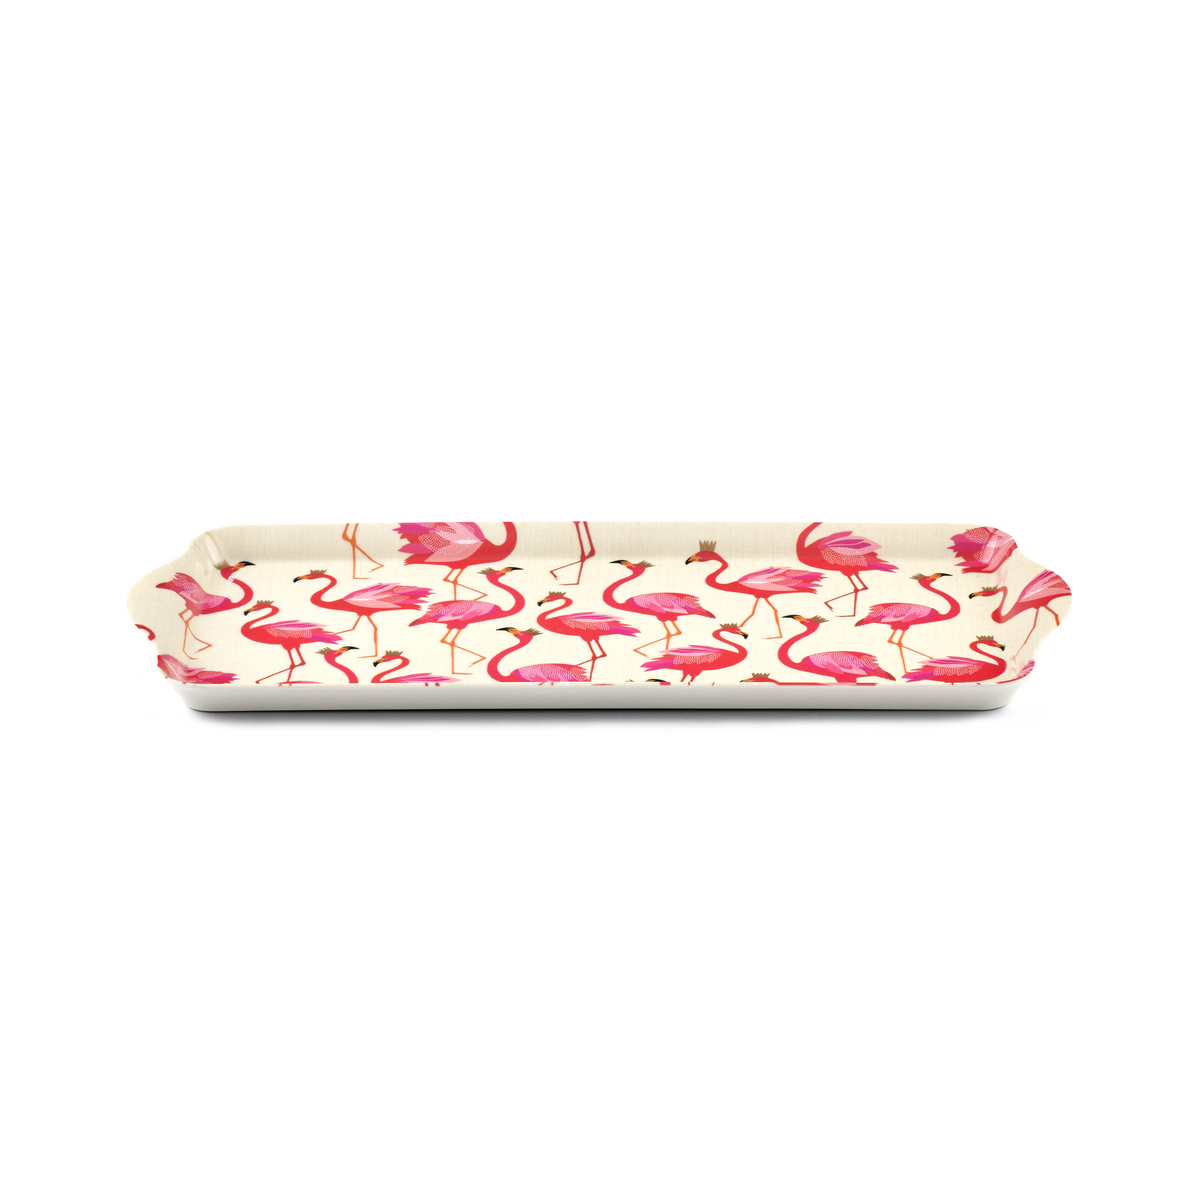 Sara Miller London for Pimpernel Flamingo  Melamine Sandwich Tray image number 1